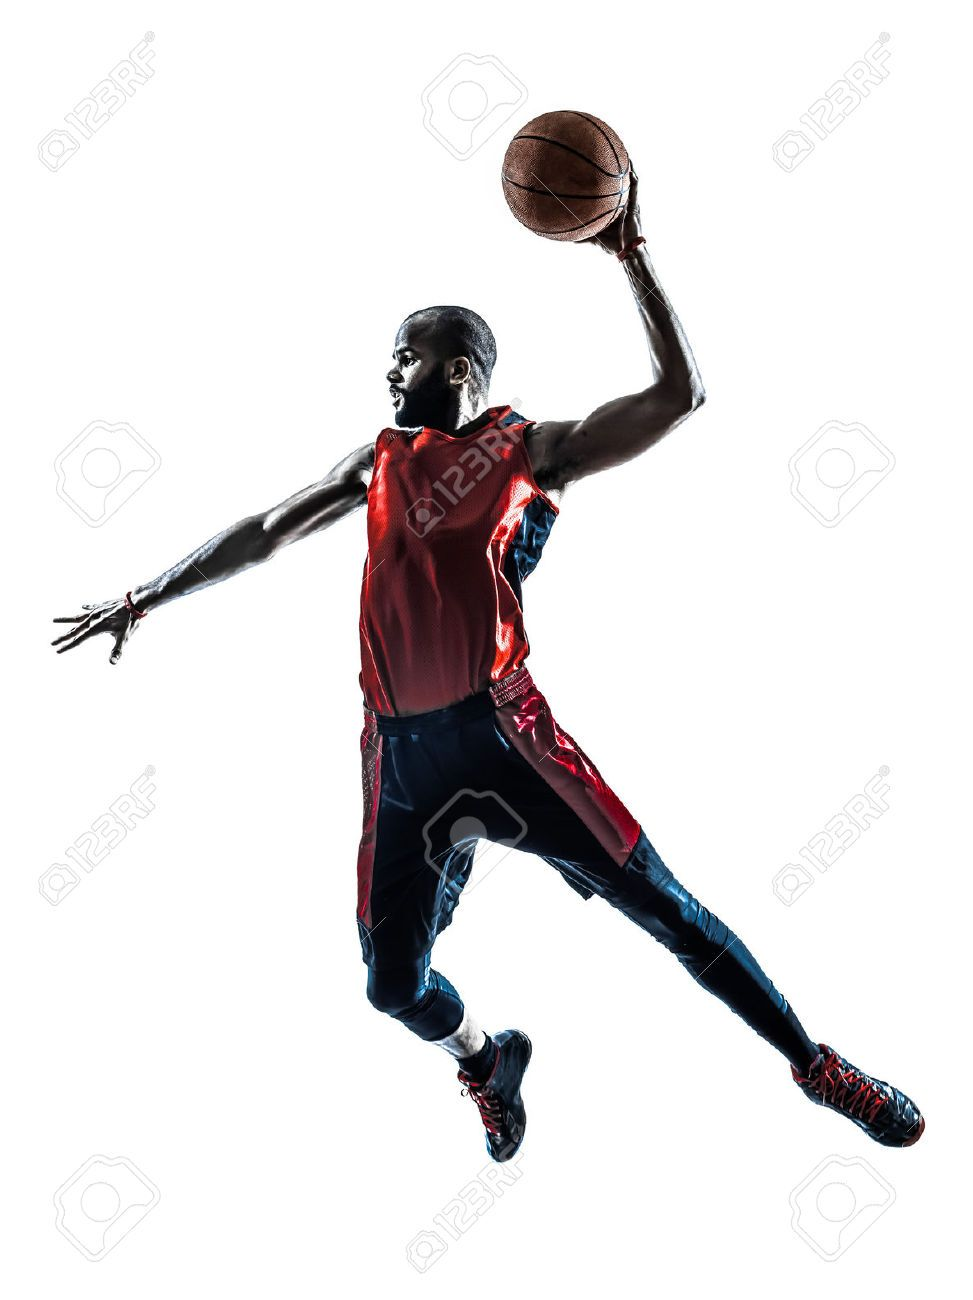 Basketball Player Dunking Google Search Basketball Players Mens Basketball Basketball